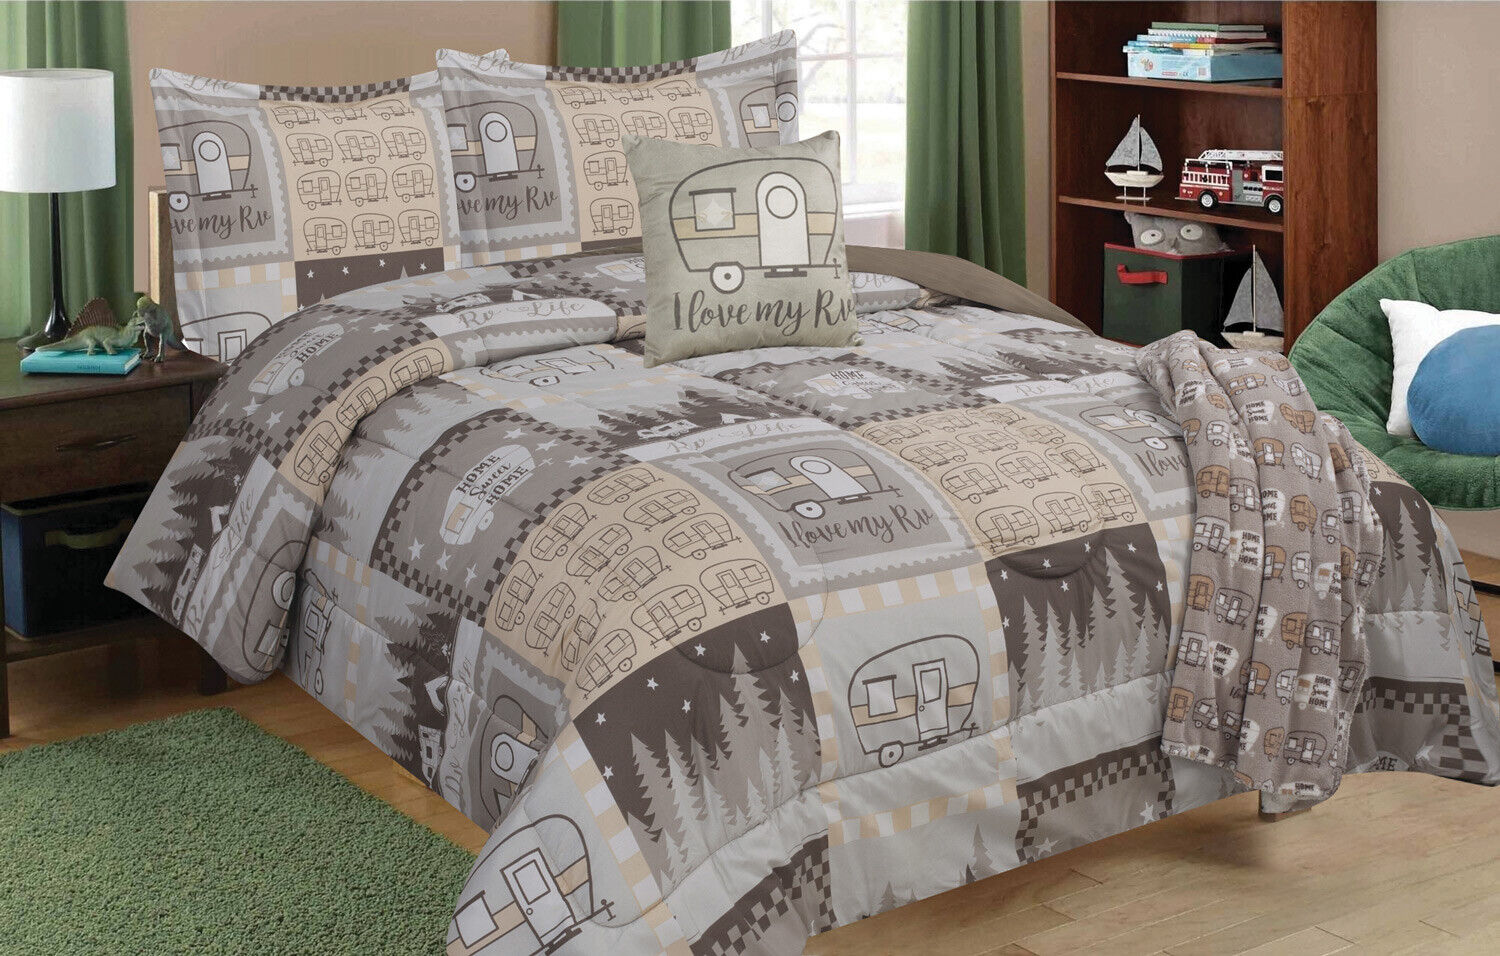 Twin, Full/Queen, or King RV Camping Comforter Set, Pillow, Blanket or Curtains Bedding